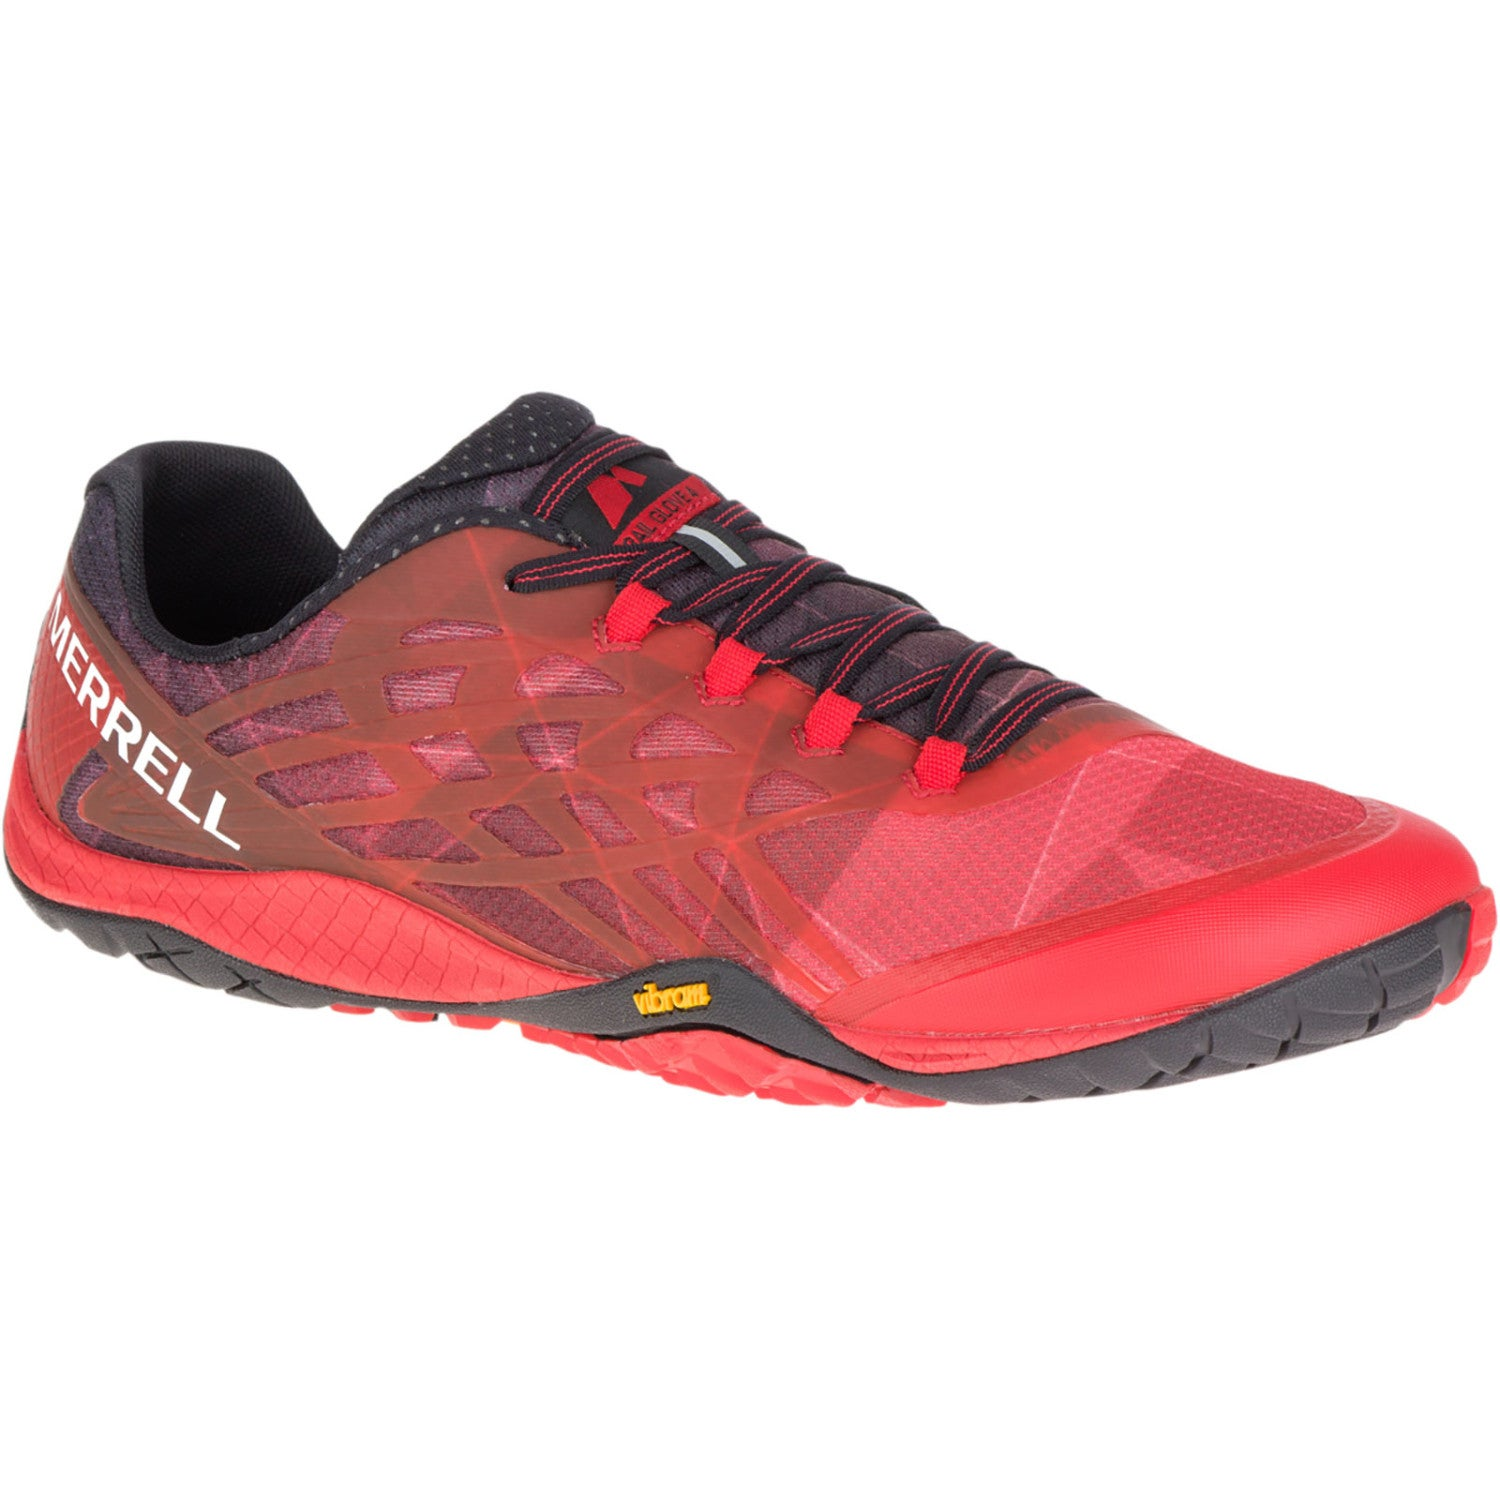 4 From Glove Fitness Footwear Barfodssko Merrell Trail b76yIYgvfm